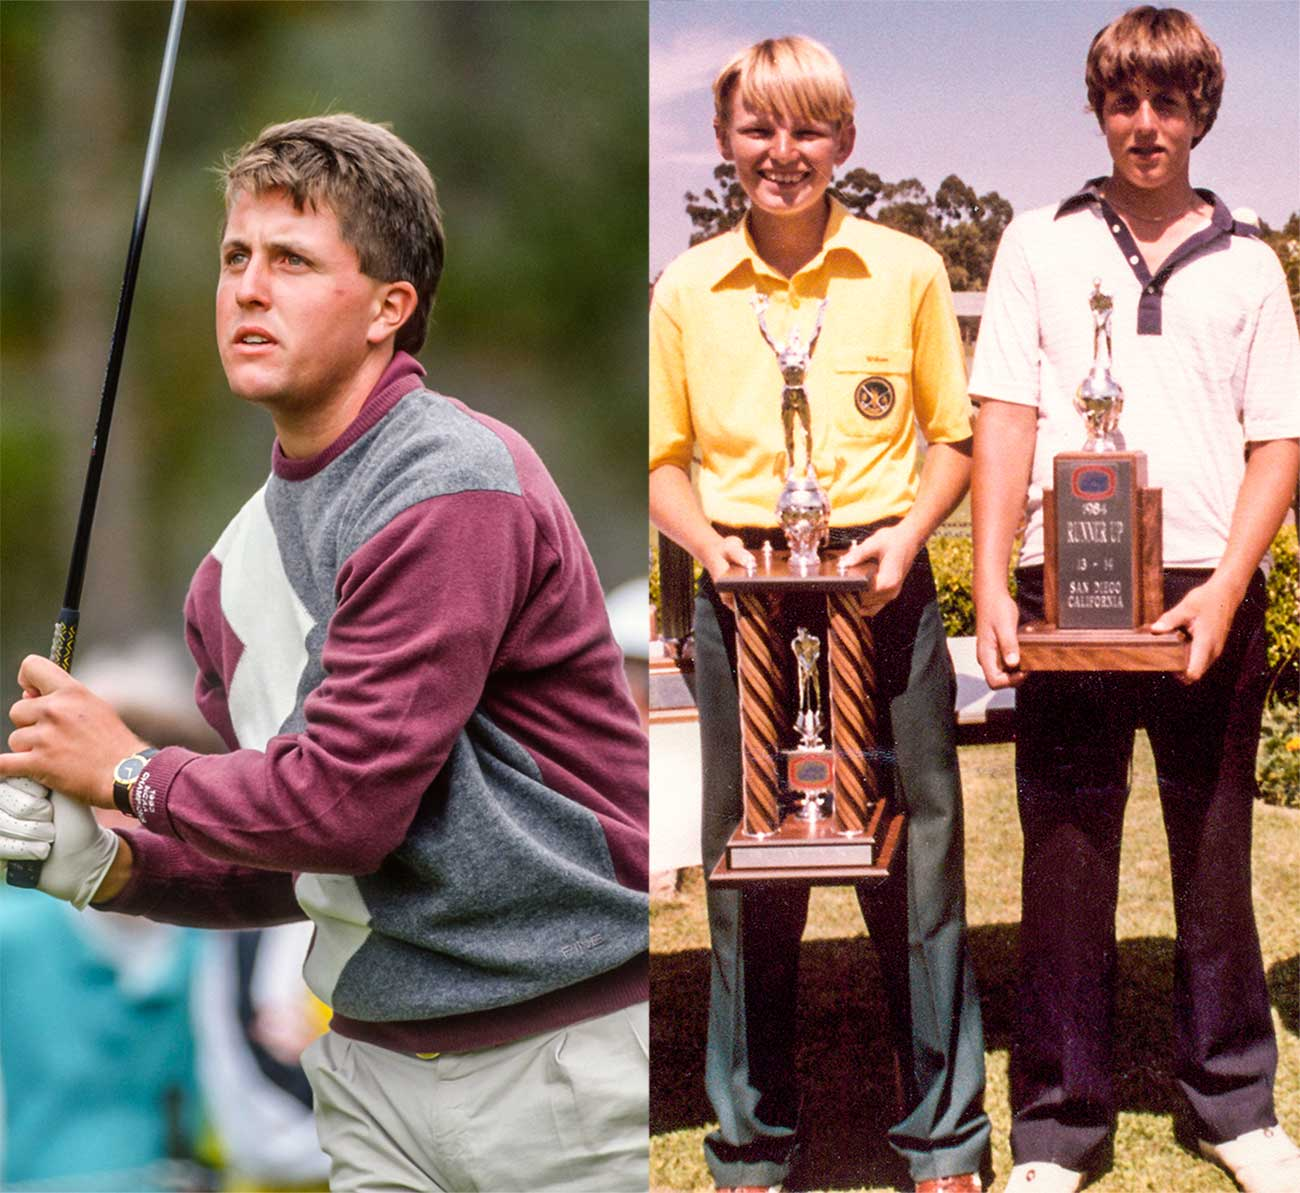 Young Phil Mickelson